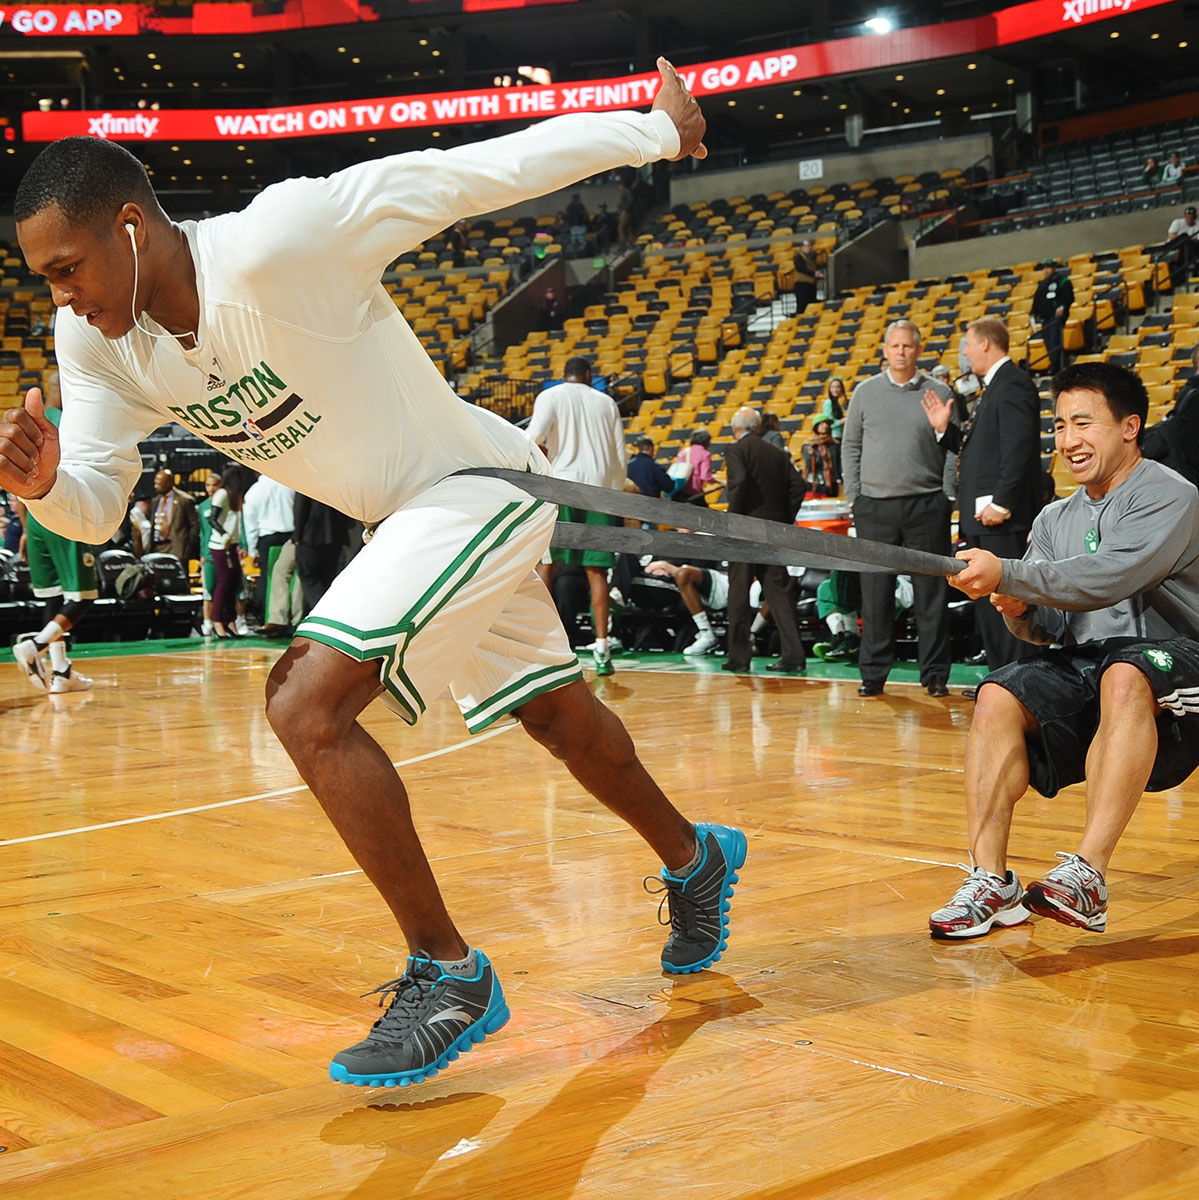 BOSTON, MA - NOVEMBER 11: Rajon Rondo #9 of the Boston Celtics works out with trainer Bryan Doo before the game against the Orlando Magic on November 1, 2013 at the TD Garden in Boston, Massachusetts.  NOTE TO USER: User expressly acknowledges and agrees that, by downloading and or using this photograph, User is consenting to the terms and conditions of the Getty Images License Agreement. Mandatory Copyright Notice: Copyright 2013 NBAE  (Photo by Brian Babineau/NBAE via Getty Images)